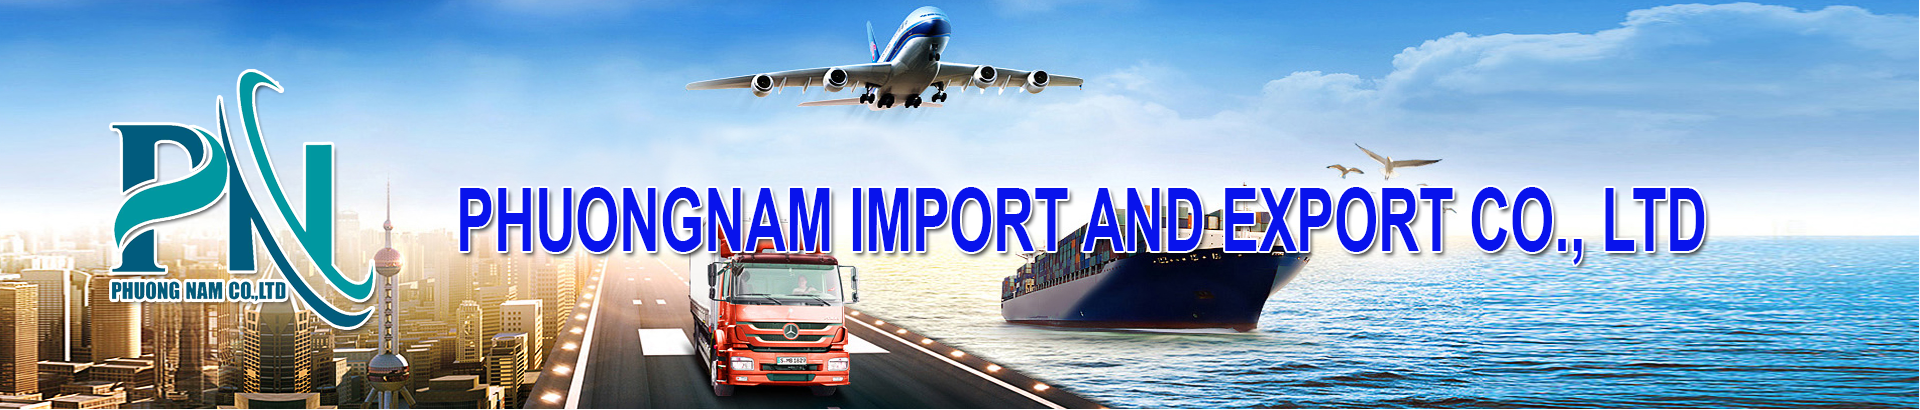 PHUONGNAM IMPORT AND EXPORT CO., LTD